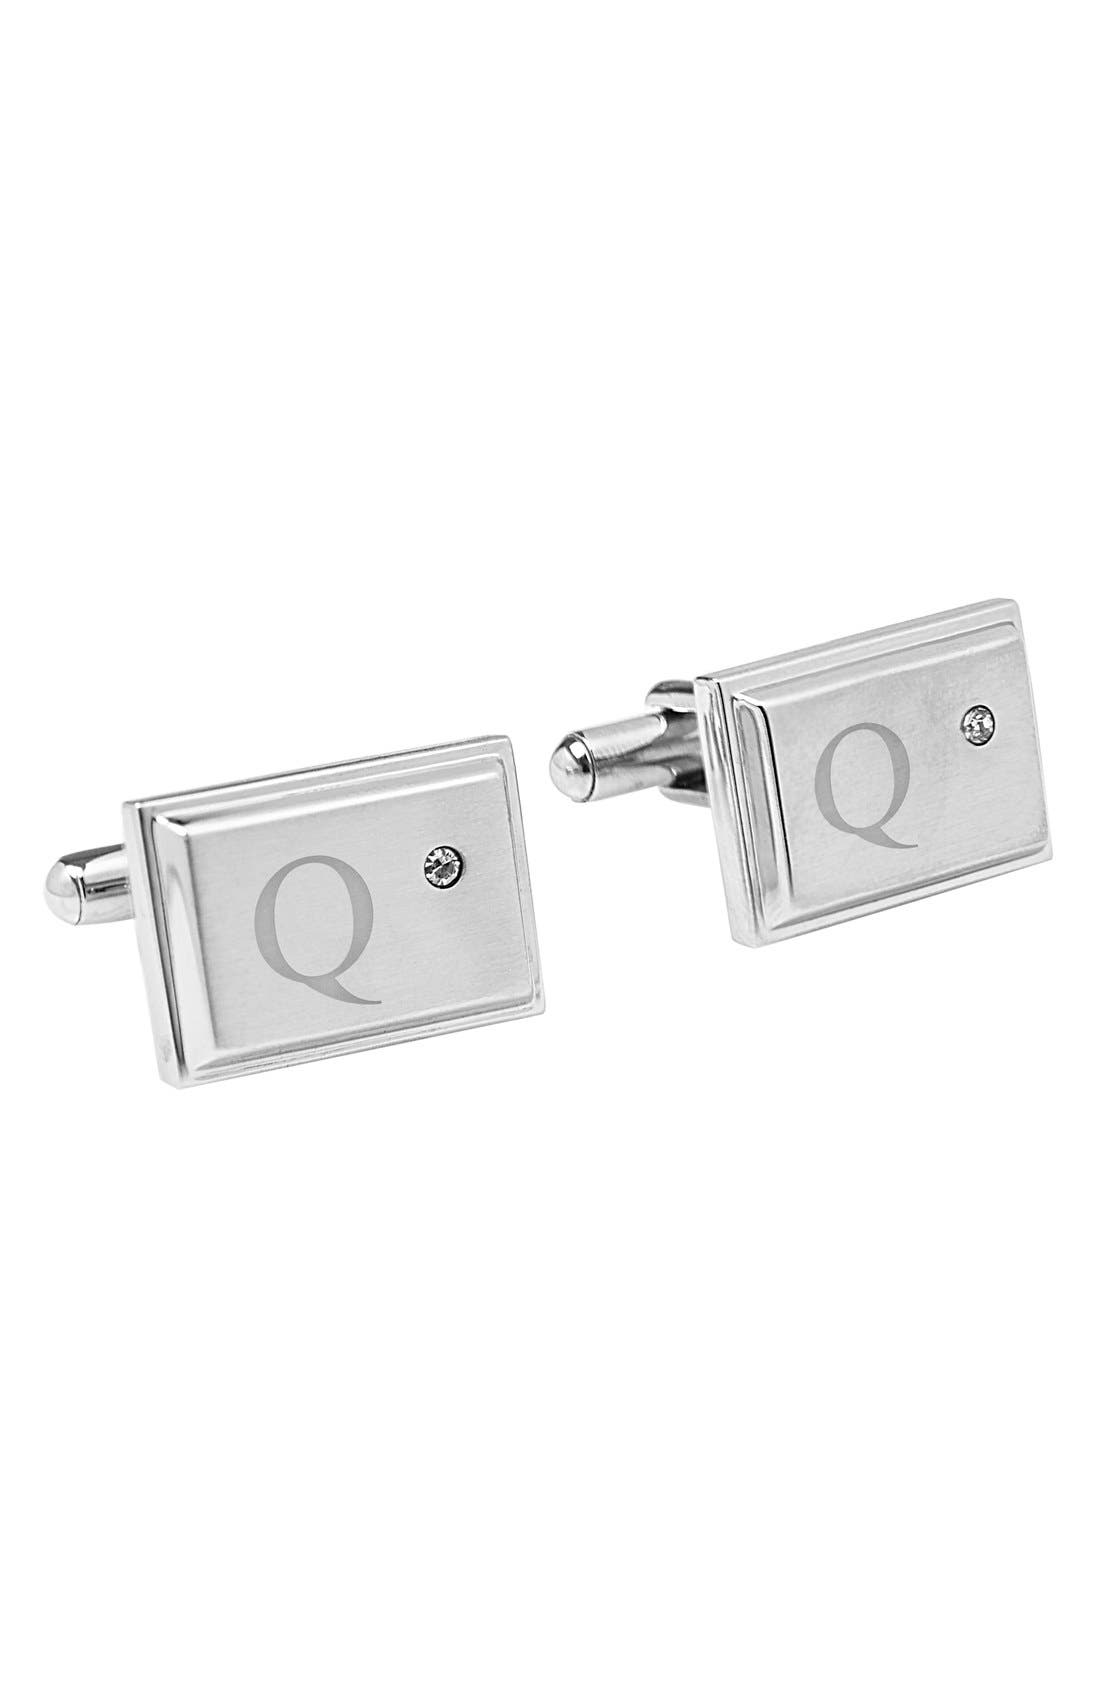 Alternate Image 1 Selected - Cathy's Concepts Monogram Cuff Links